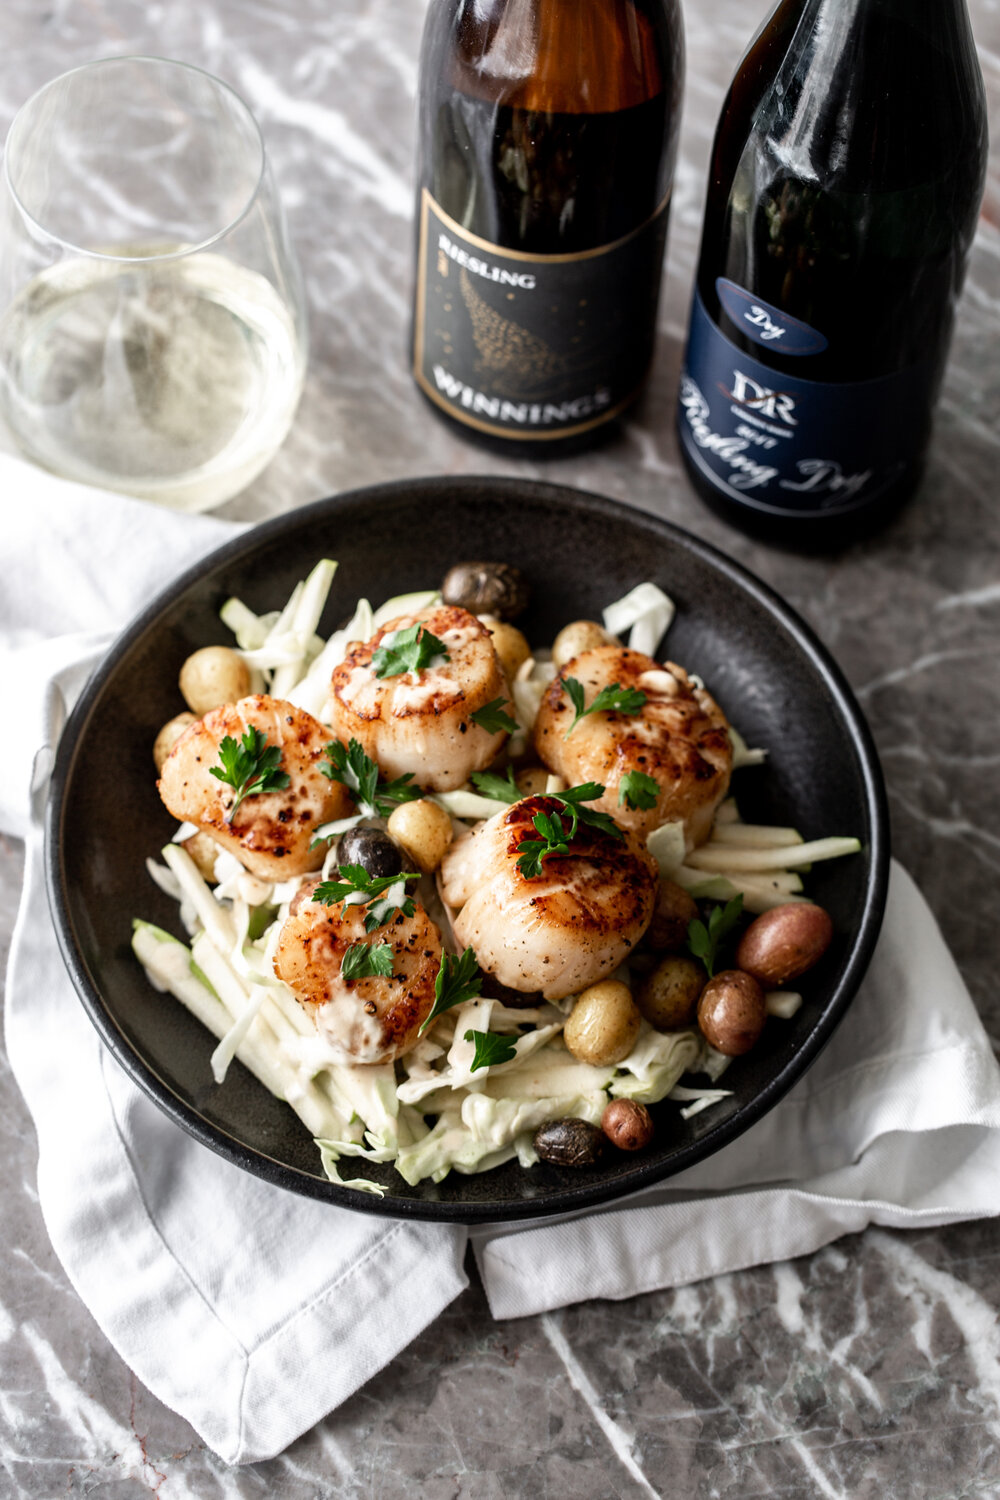 Seared Scallops with Green Apple Slaw Paired with German Riesling-28.jpg